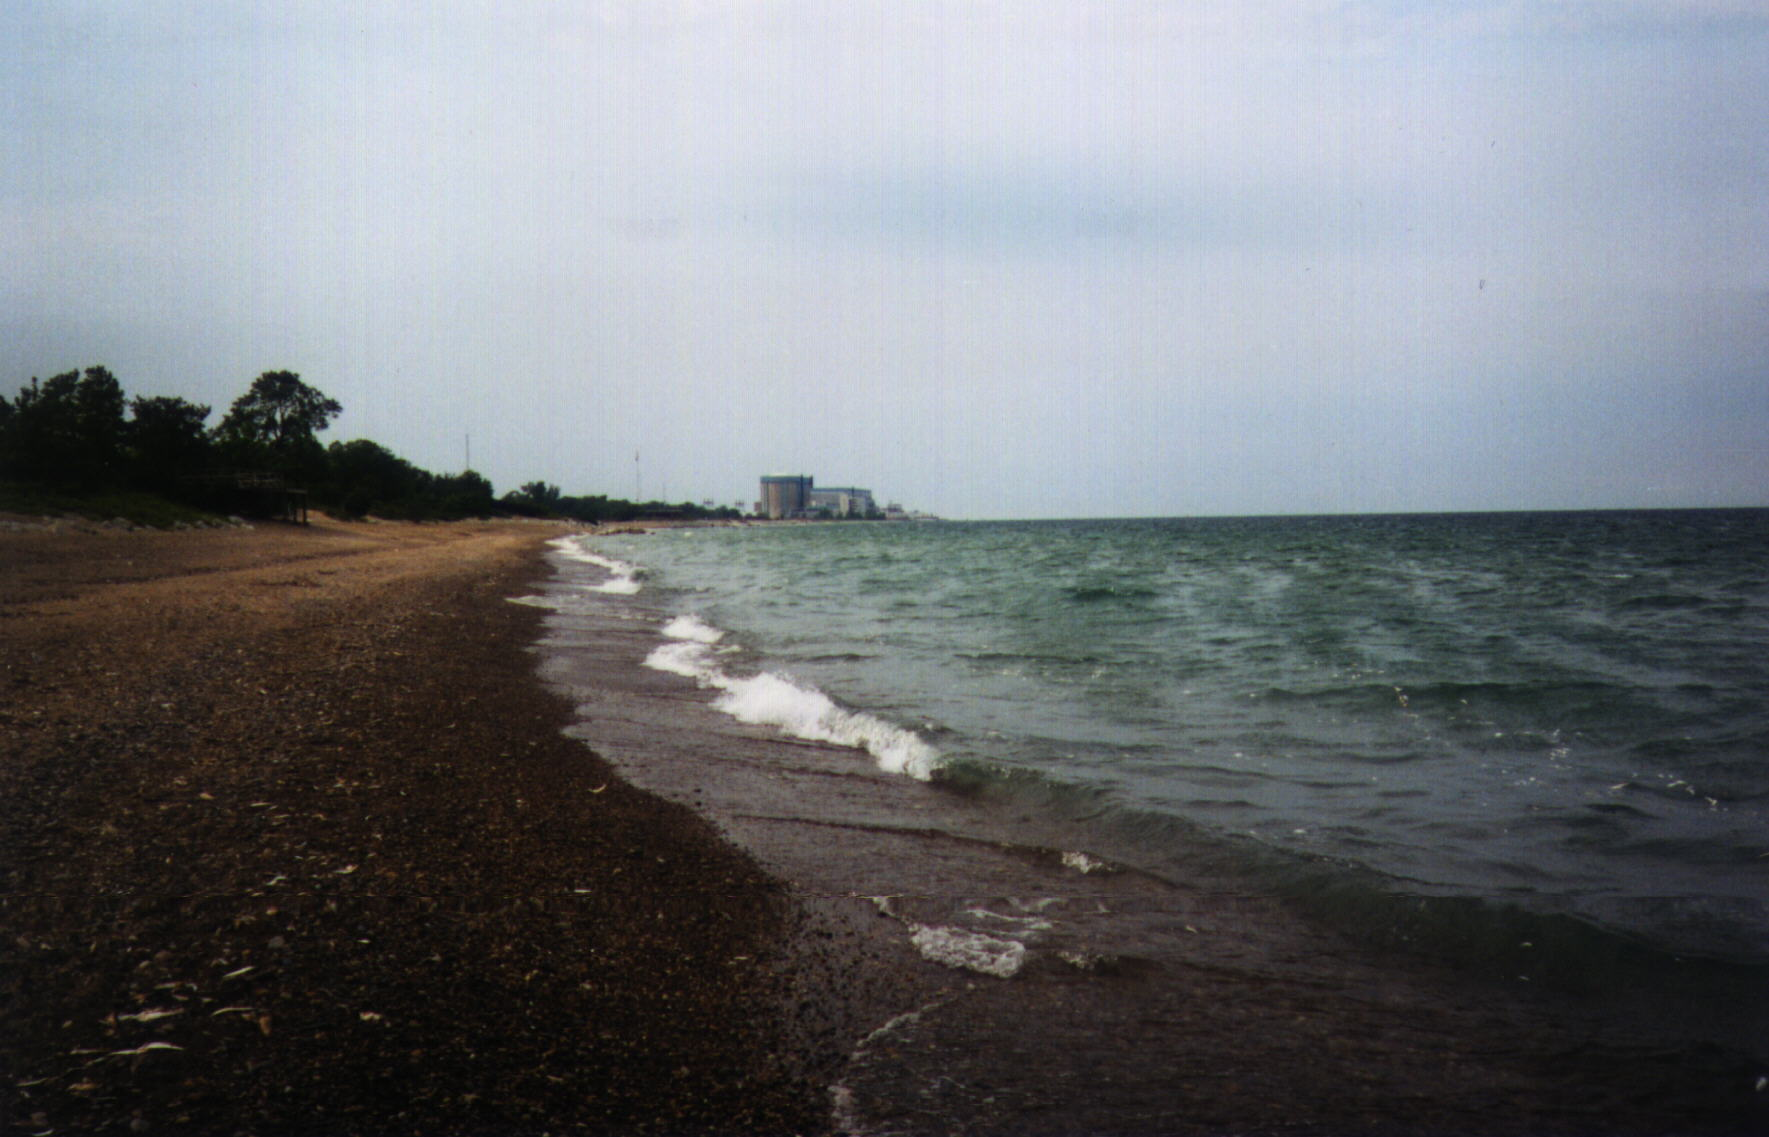 Illinois Beach State Park Zion Nuclear Plant In The Distance